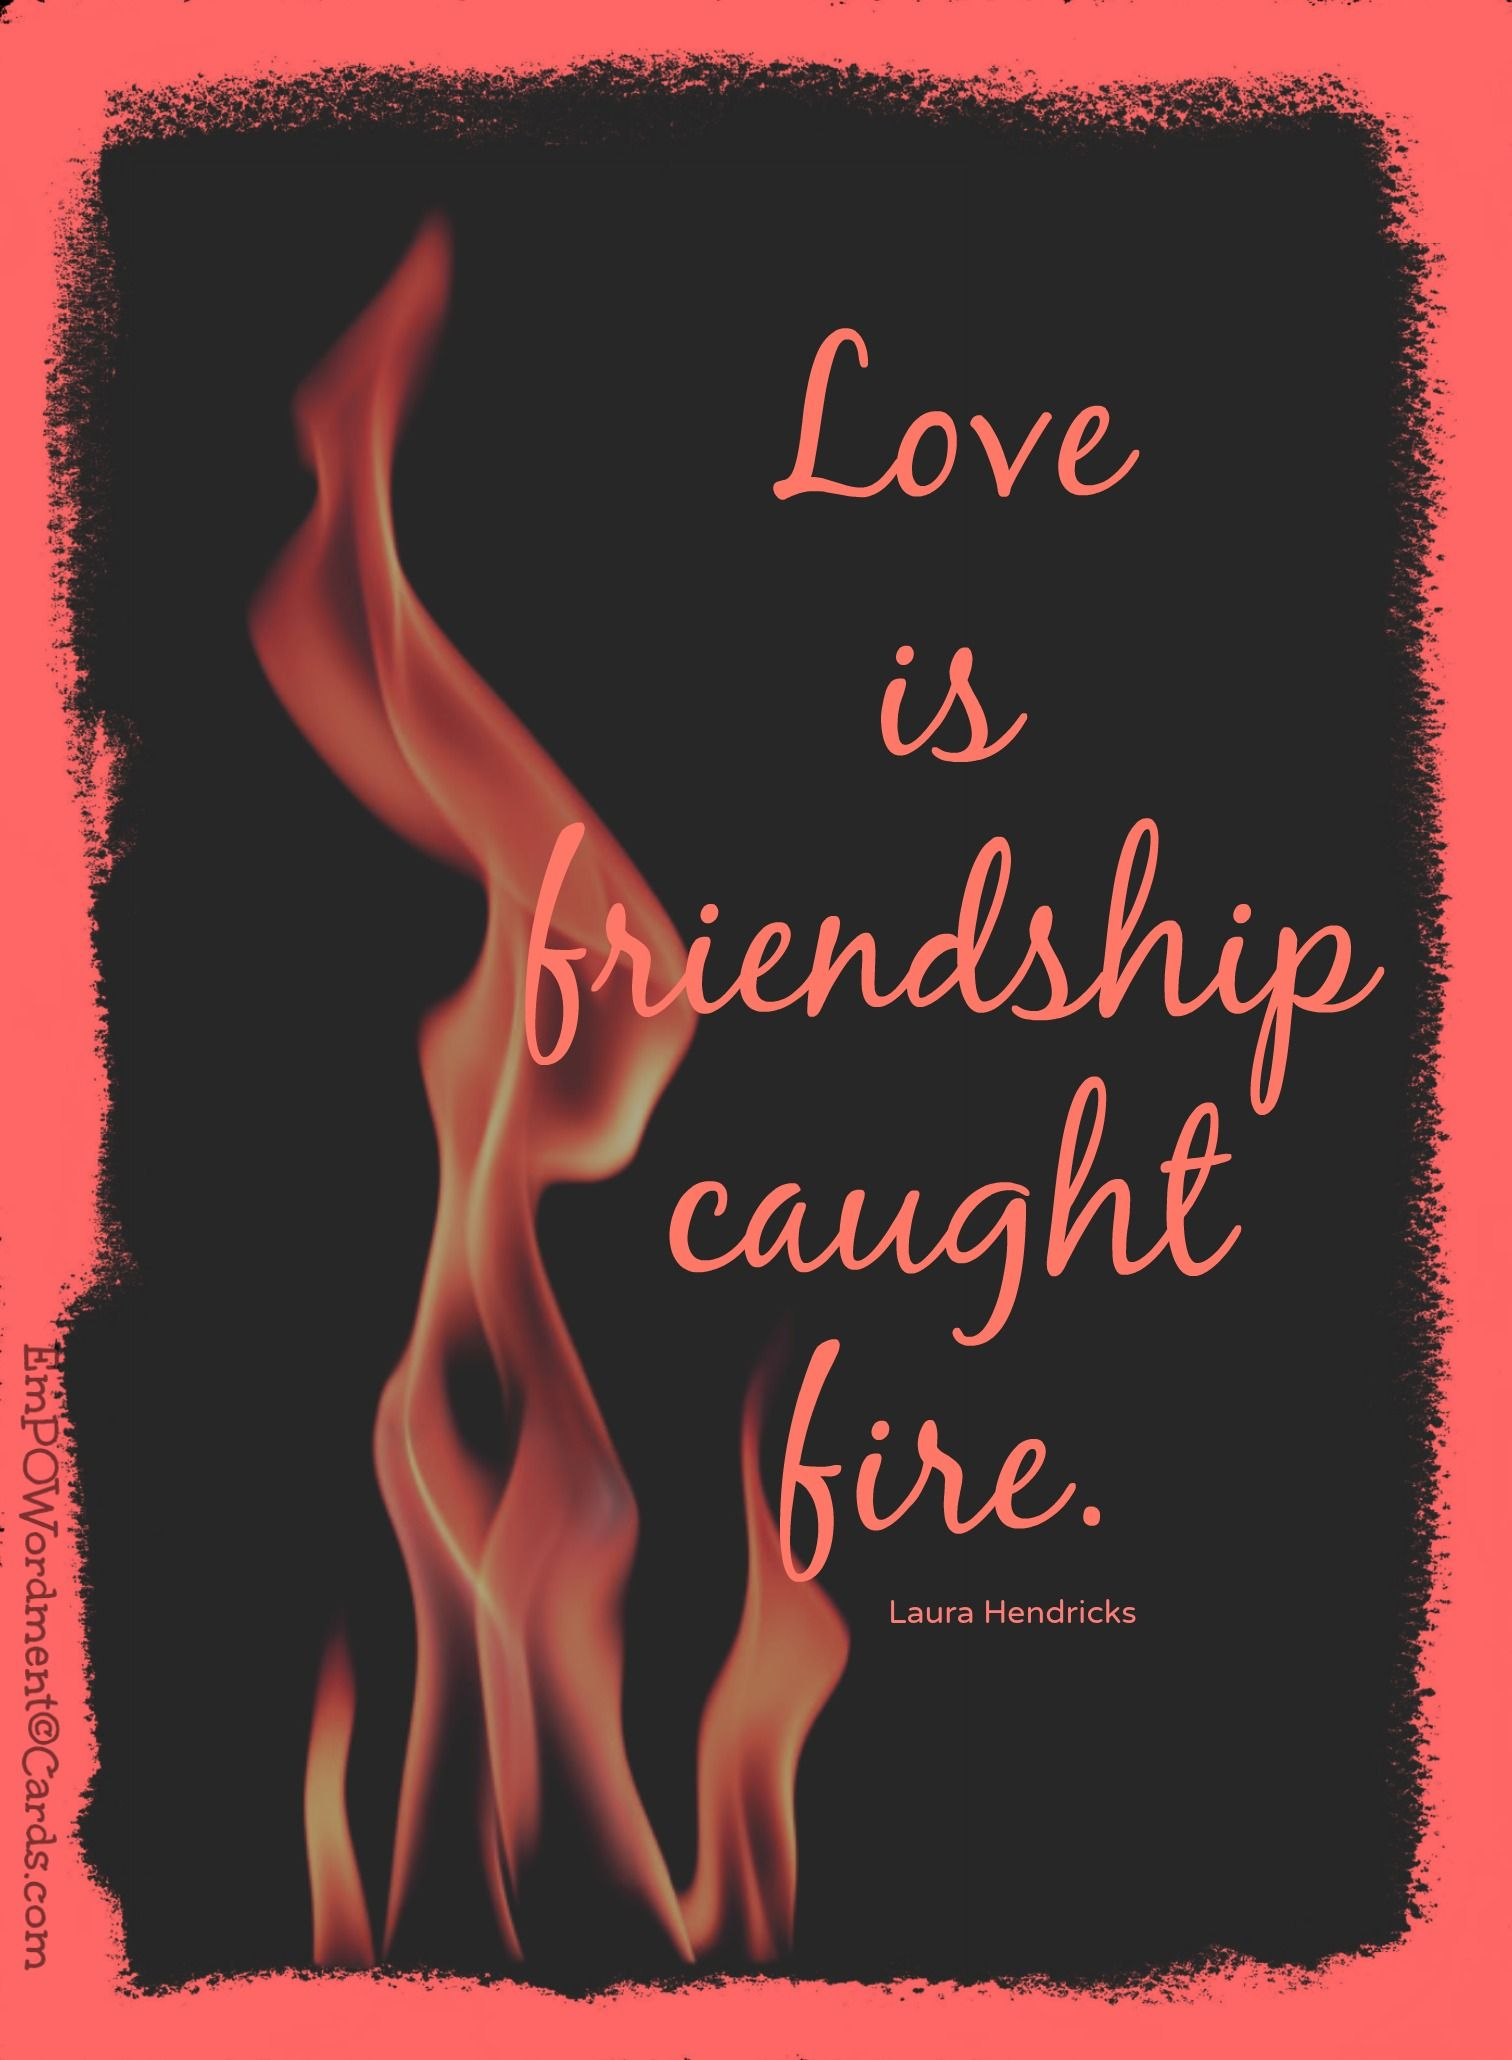 Quotes About Friendship Lovers Love Is Friendship Caught Firelaura Hendricks Quote Purchase